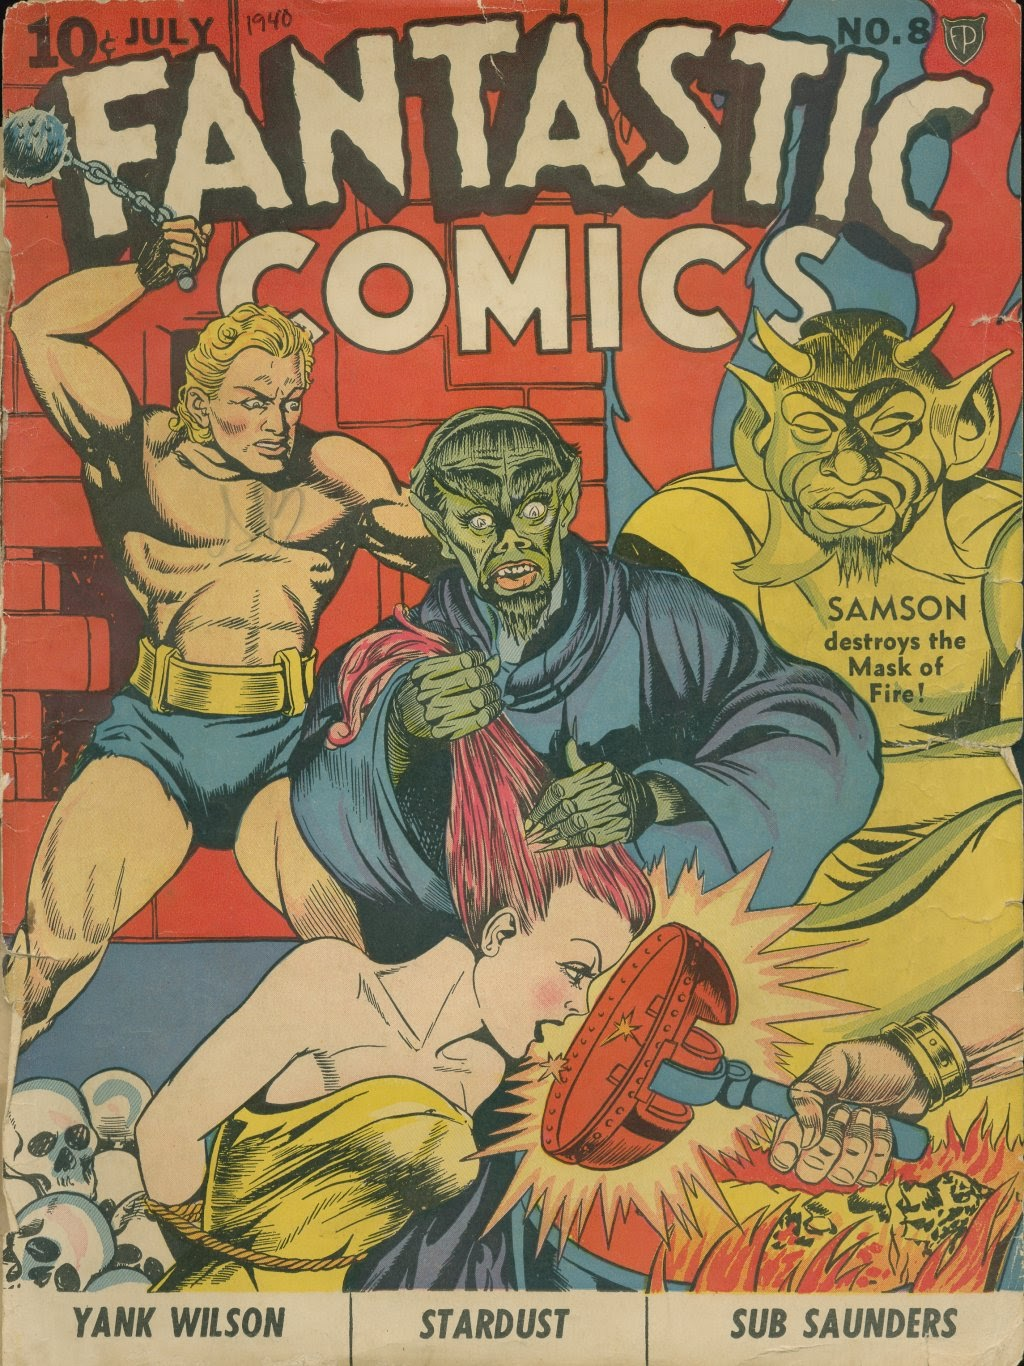 Read online Fantastic Comics comic -  Issue #8 - 1